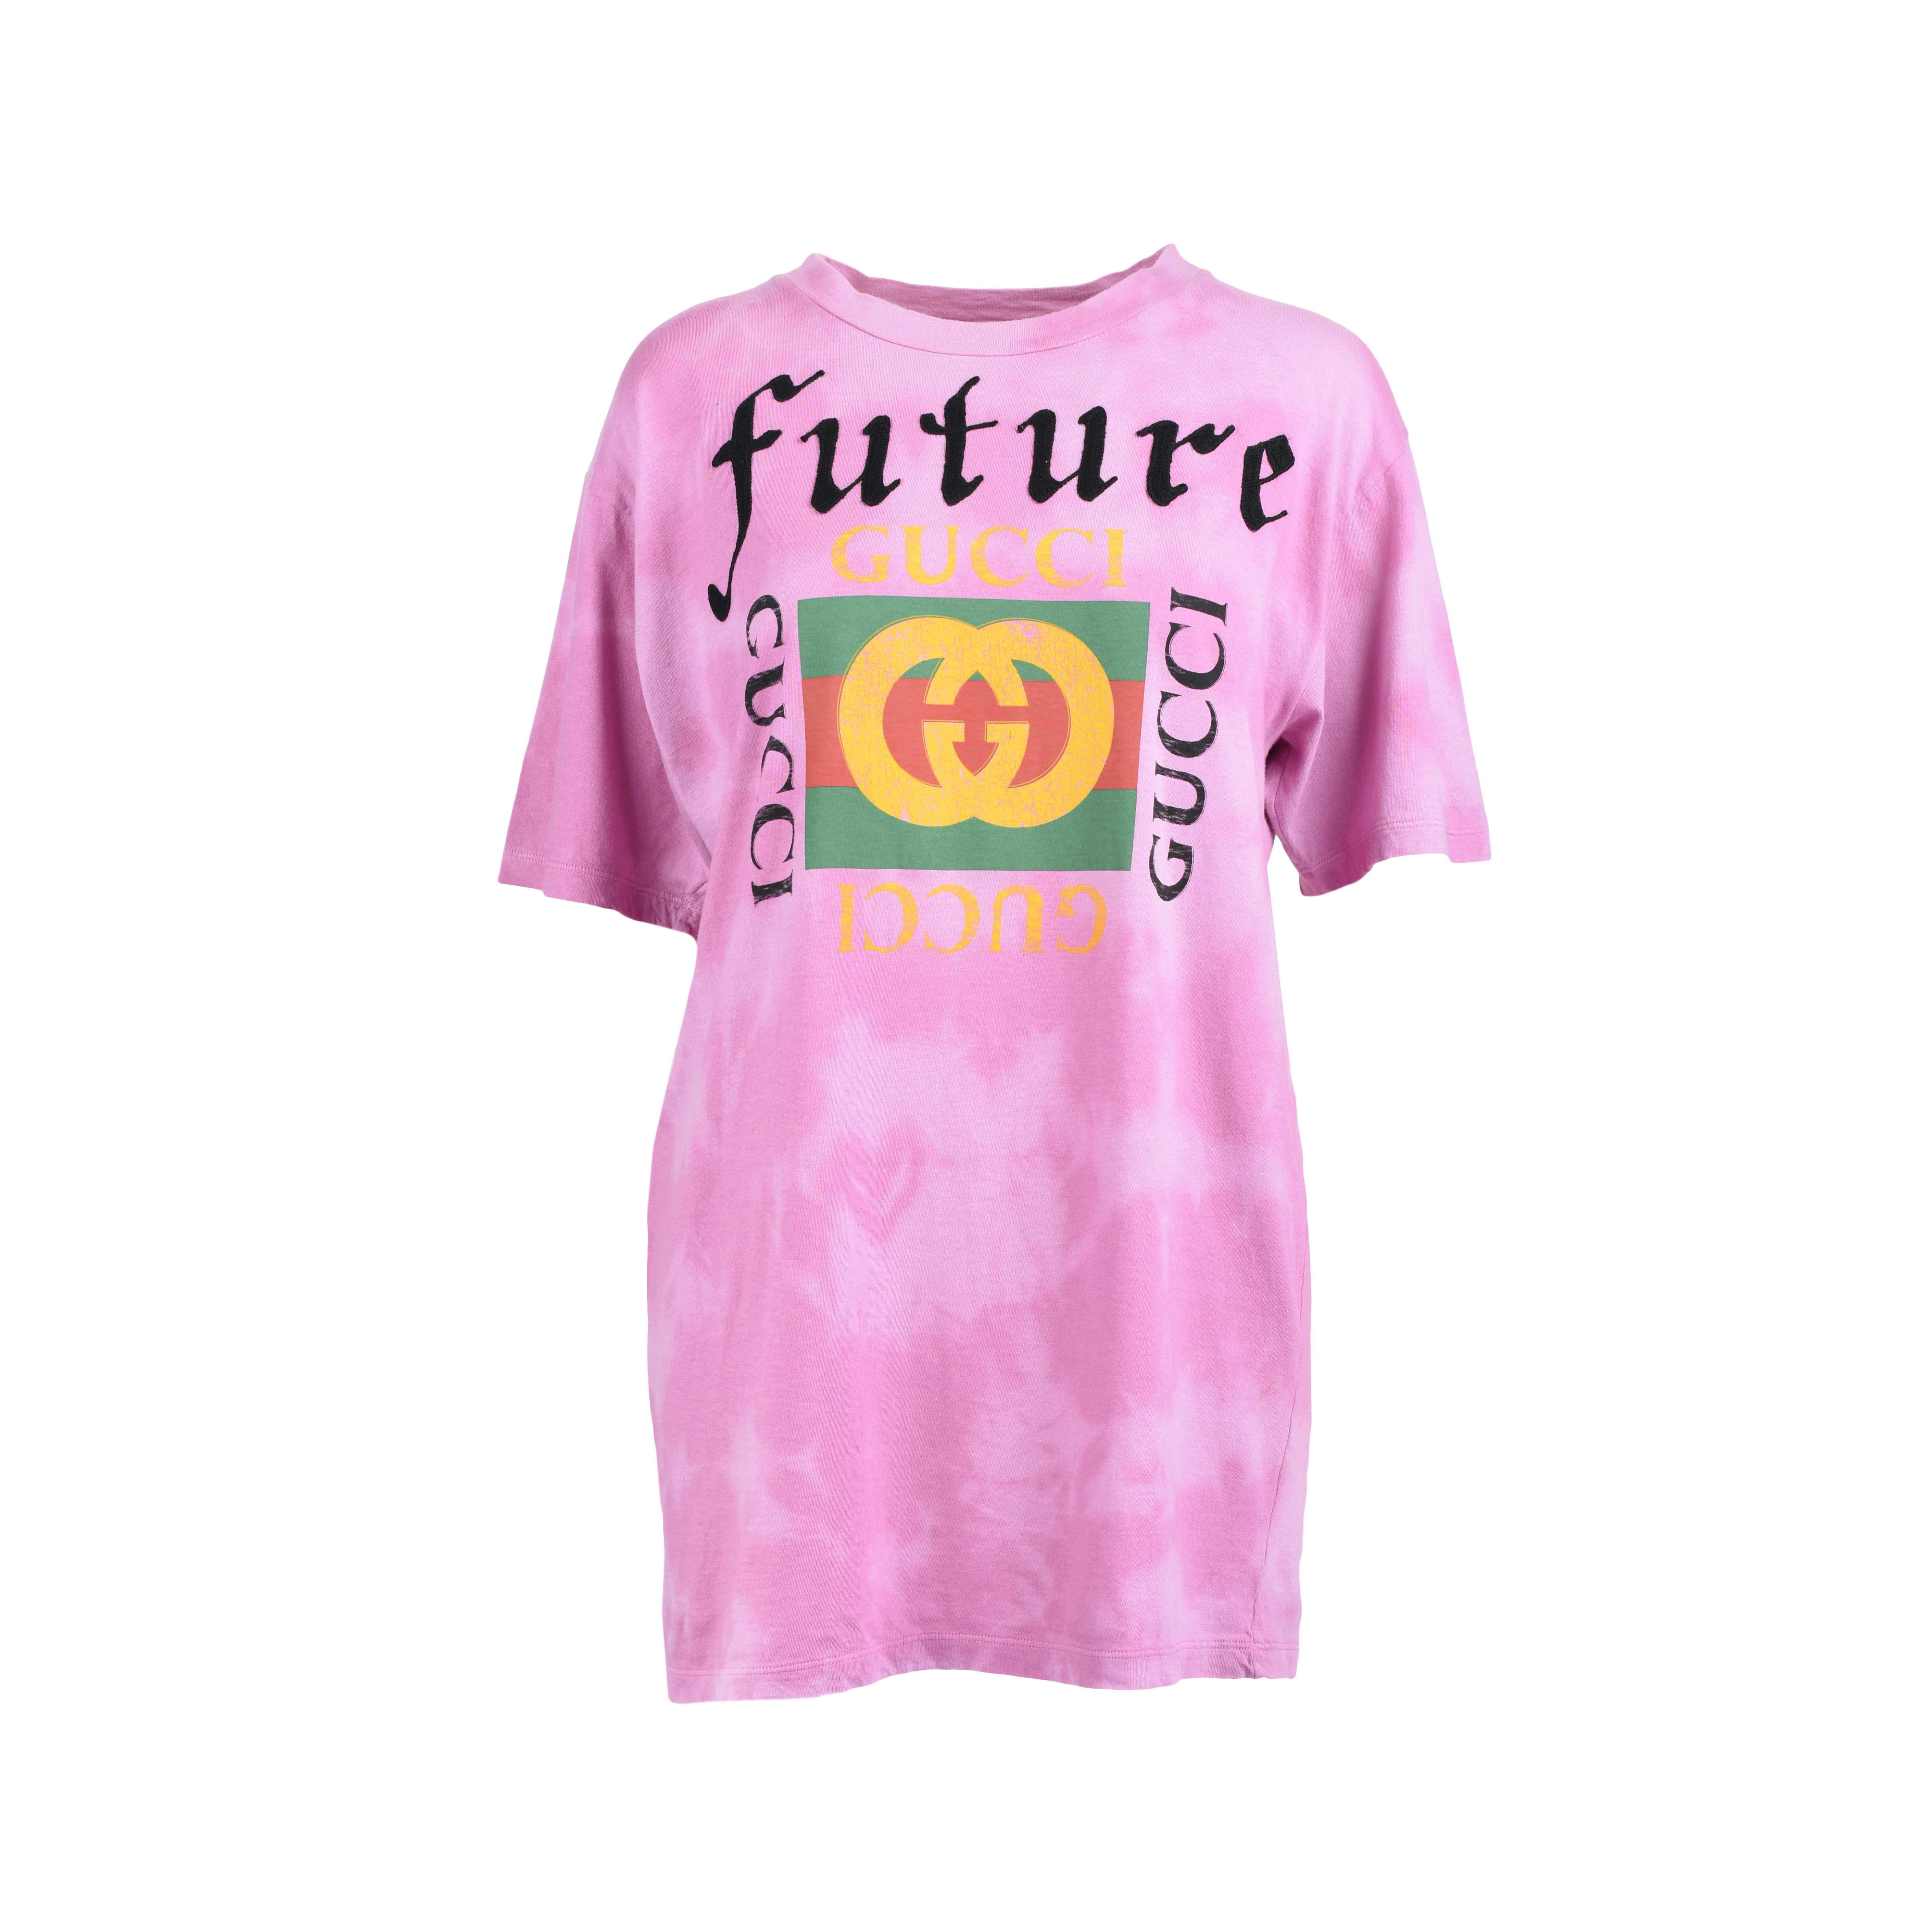 25ef8a42463 Authentic Second Hand Gucci Future Embroidered T-shirt (PSS-051-00347) |  THE FIFTH COLLECTION